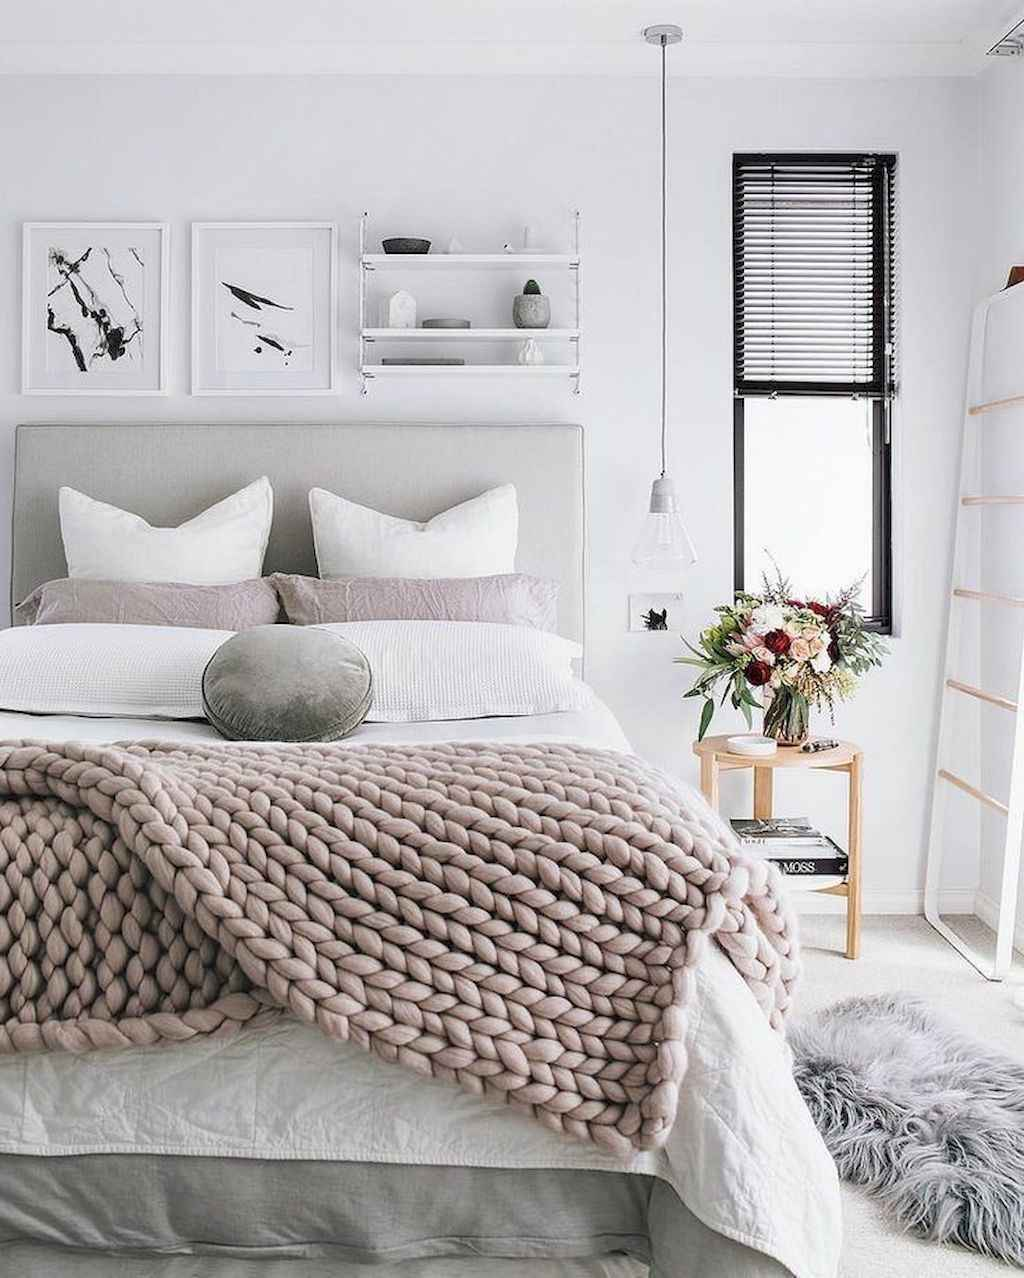 Amazing small first apartment decorating ideas (29)